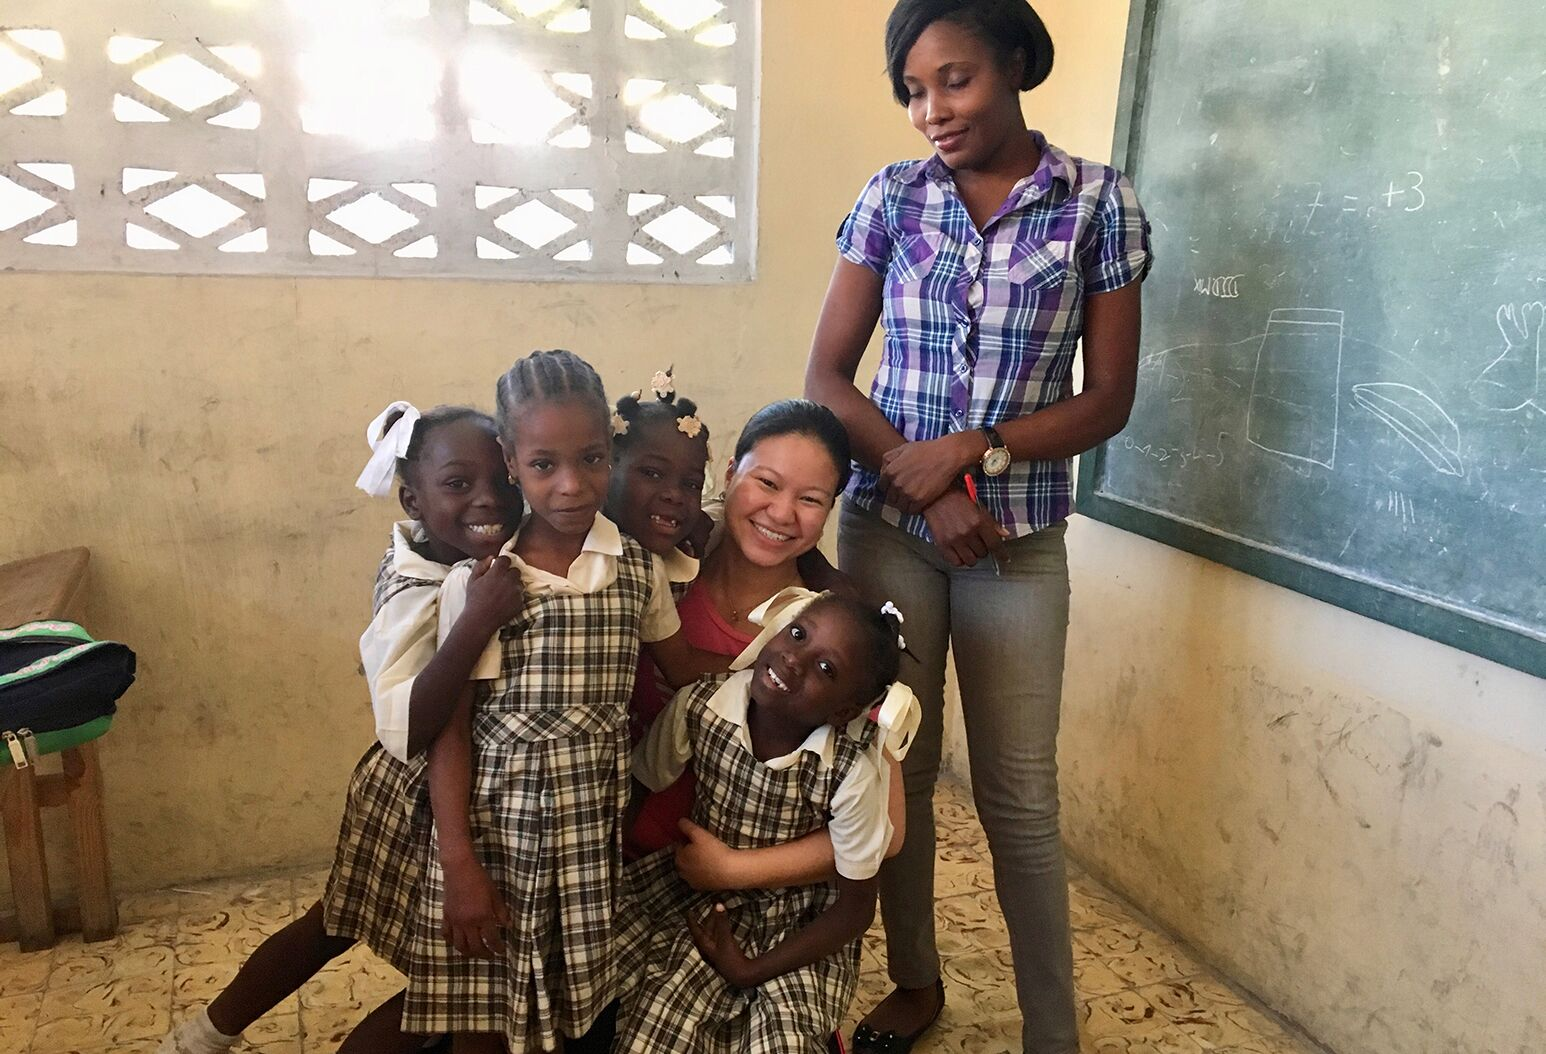 Nina Ng hugs a group of smiling Haitian children in a classroom while their schoolteacher stands nearby.